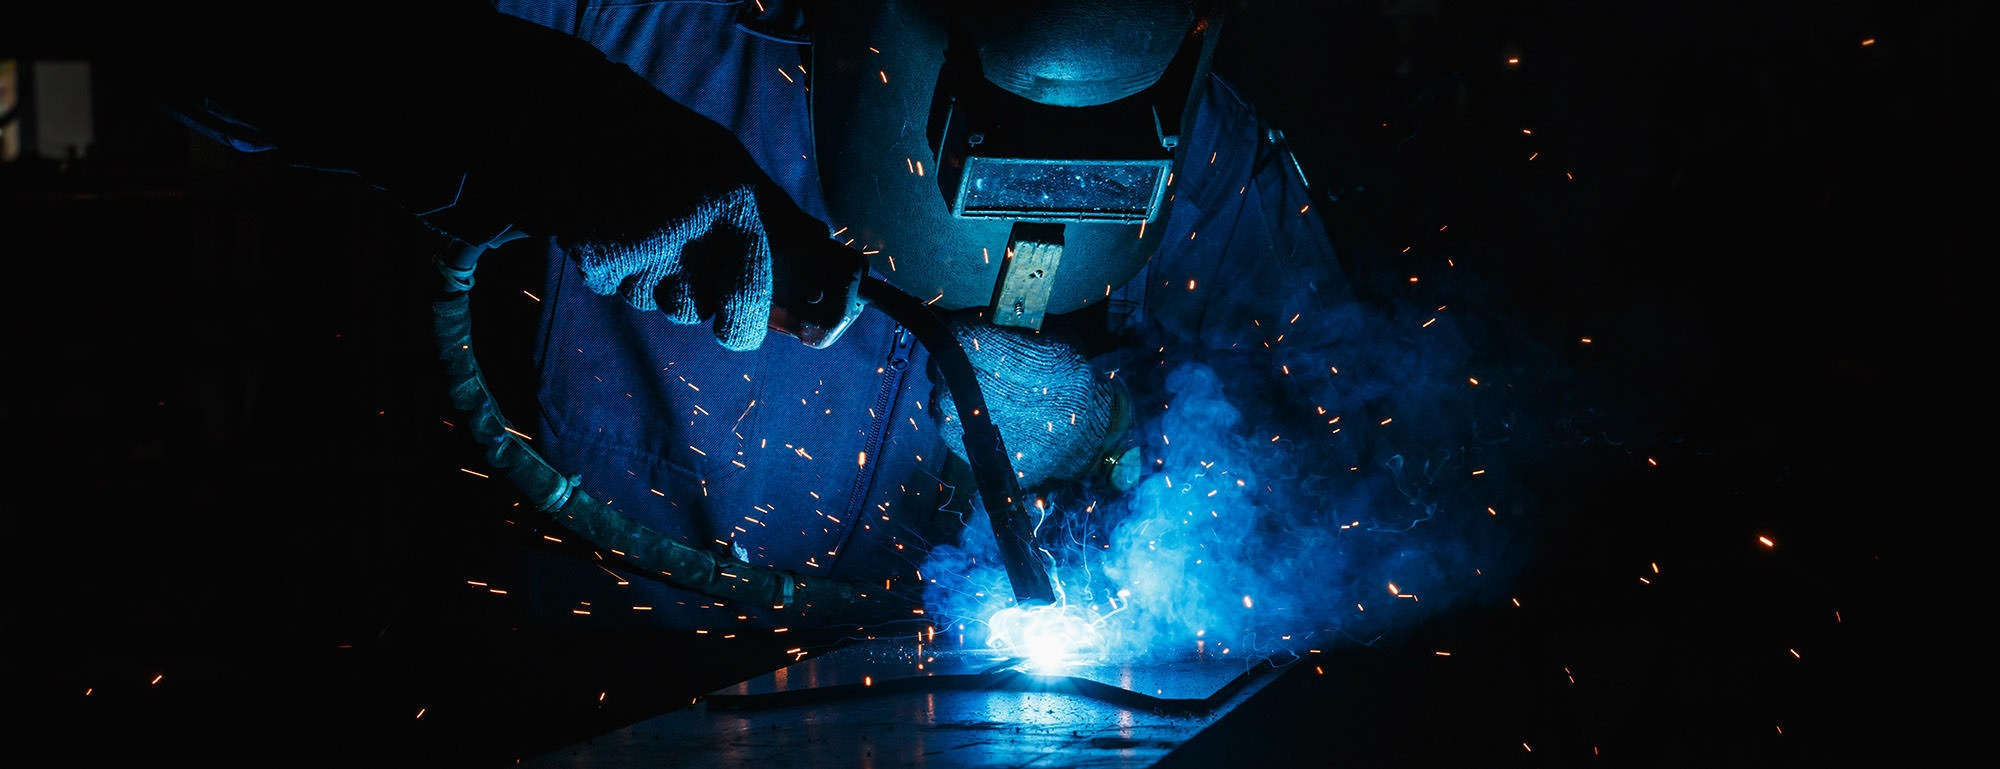 Welder of Metal Welding with sparks in industry steel weld  Sport e lavoro insieme per avviare Corsi di Formazione professionalizzanti welder of metal welding with sparks in industry steel weld